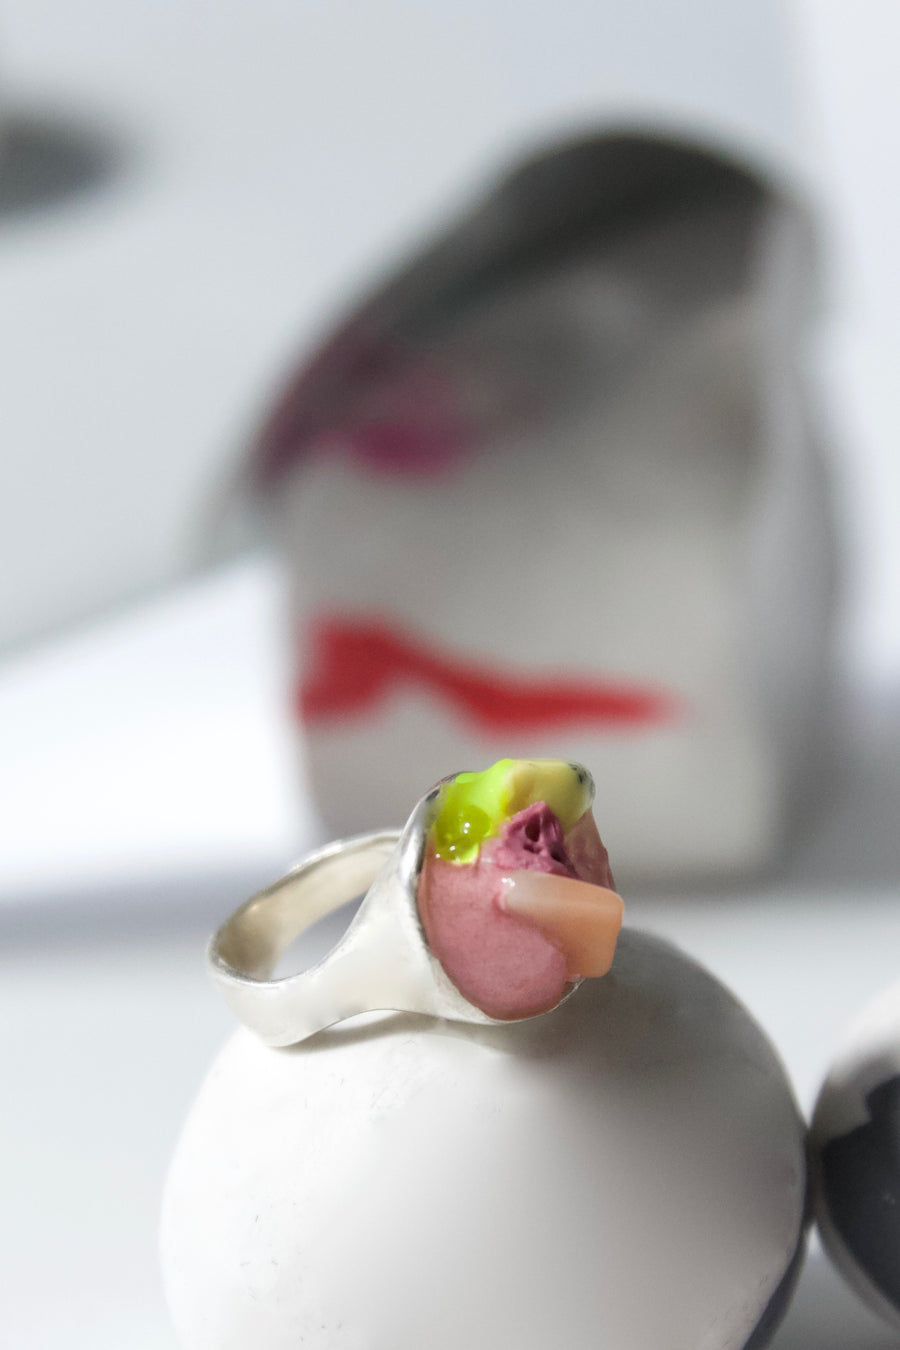 One-of-A-Kind Handcrafted Sterling Silver Pink Pinky Ring by Gré with Aventurine and Jasper